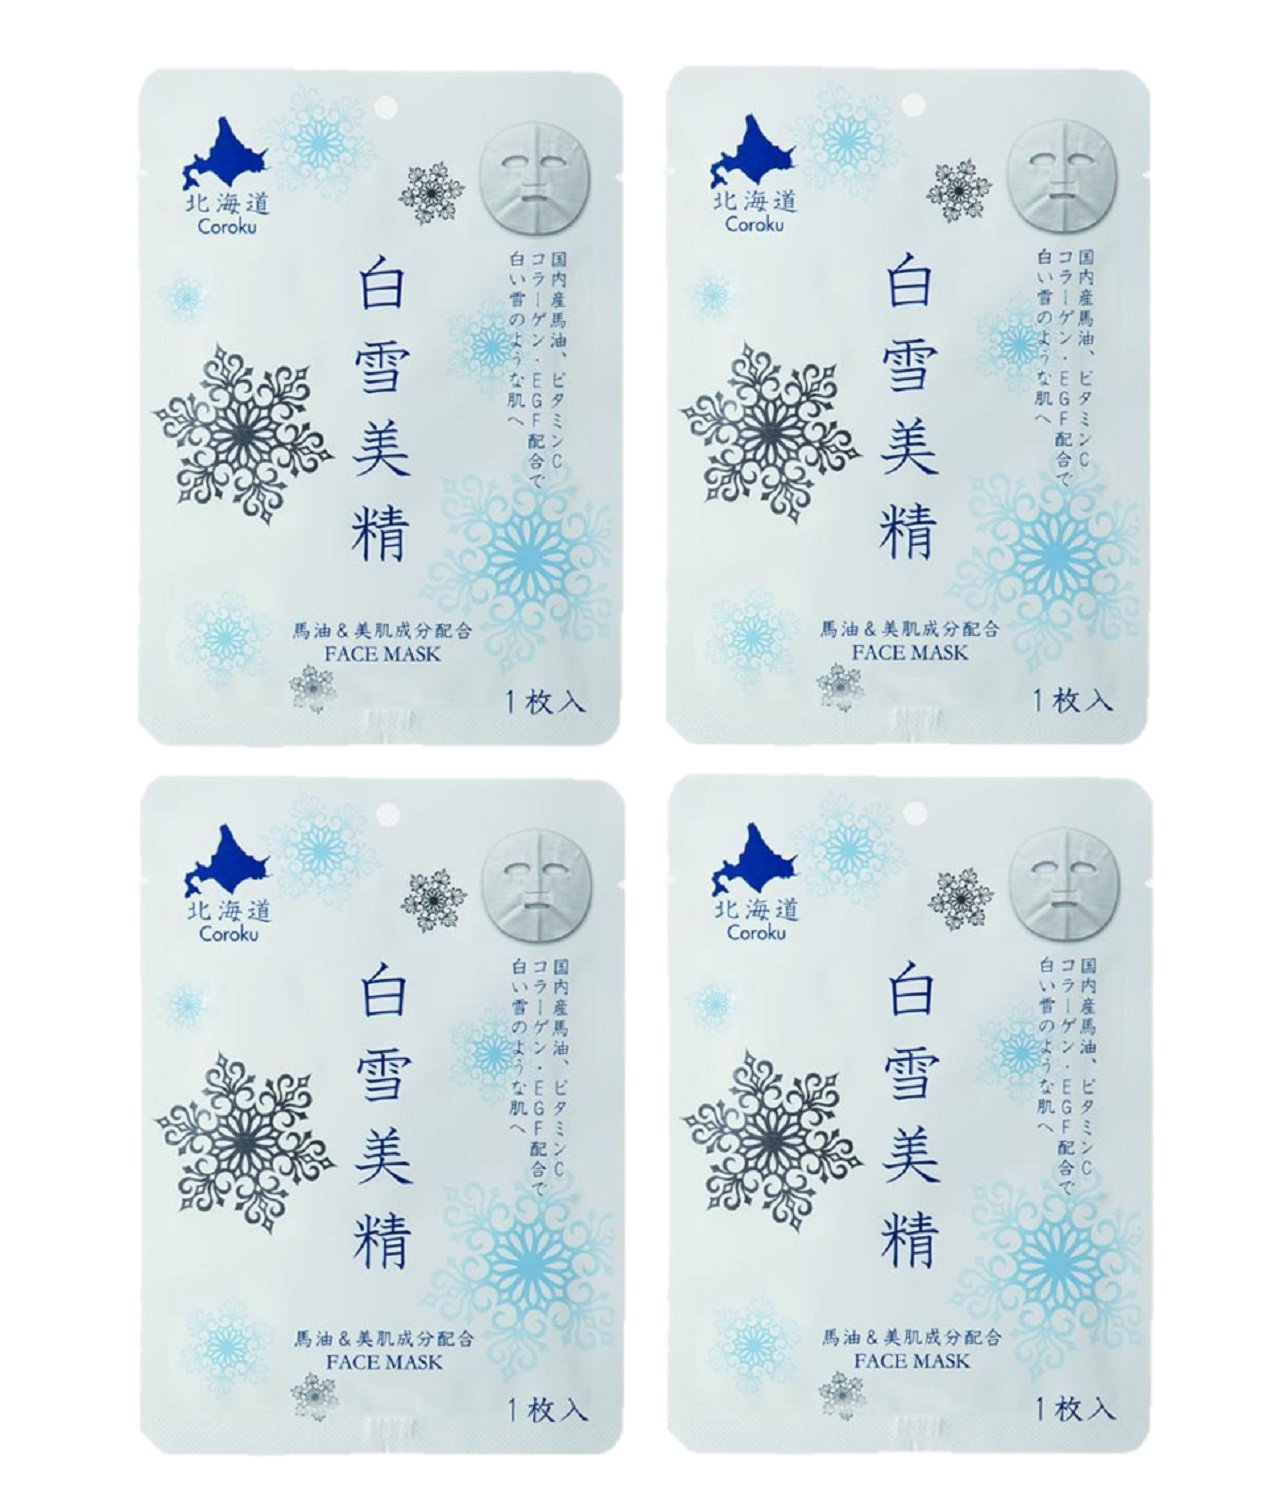 Amazon.com: Coroku Yukimi Haku Fine Facial White Mask 3 Pieces Skin Care Japan: Beauty